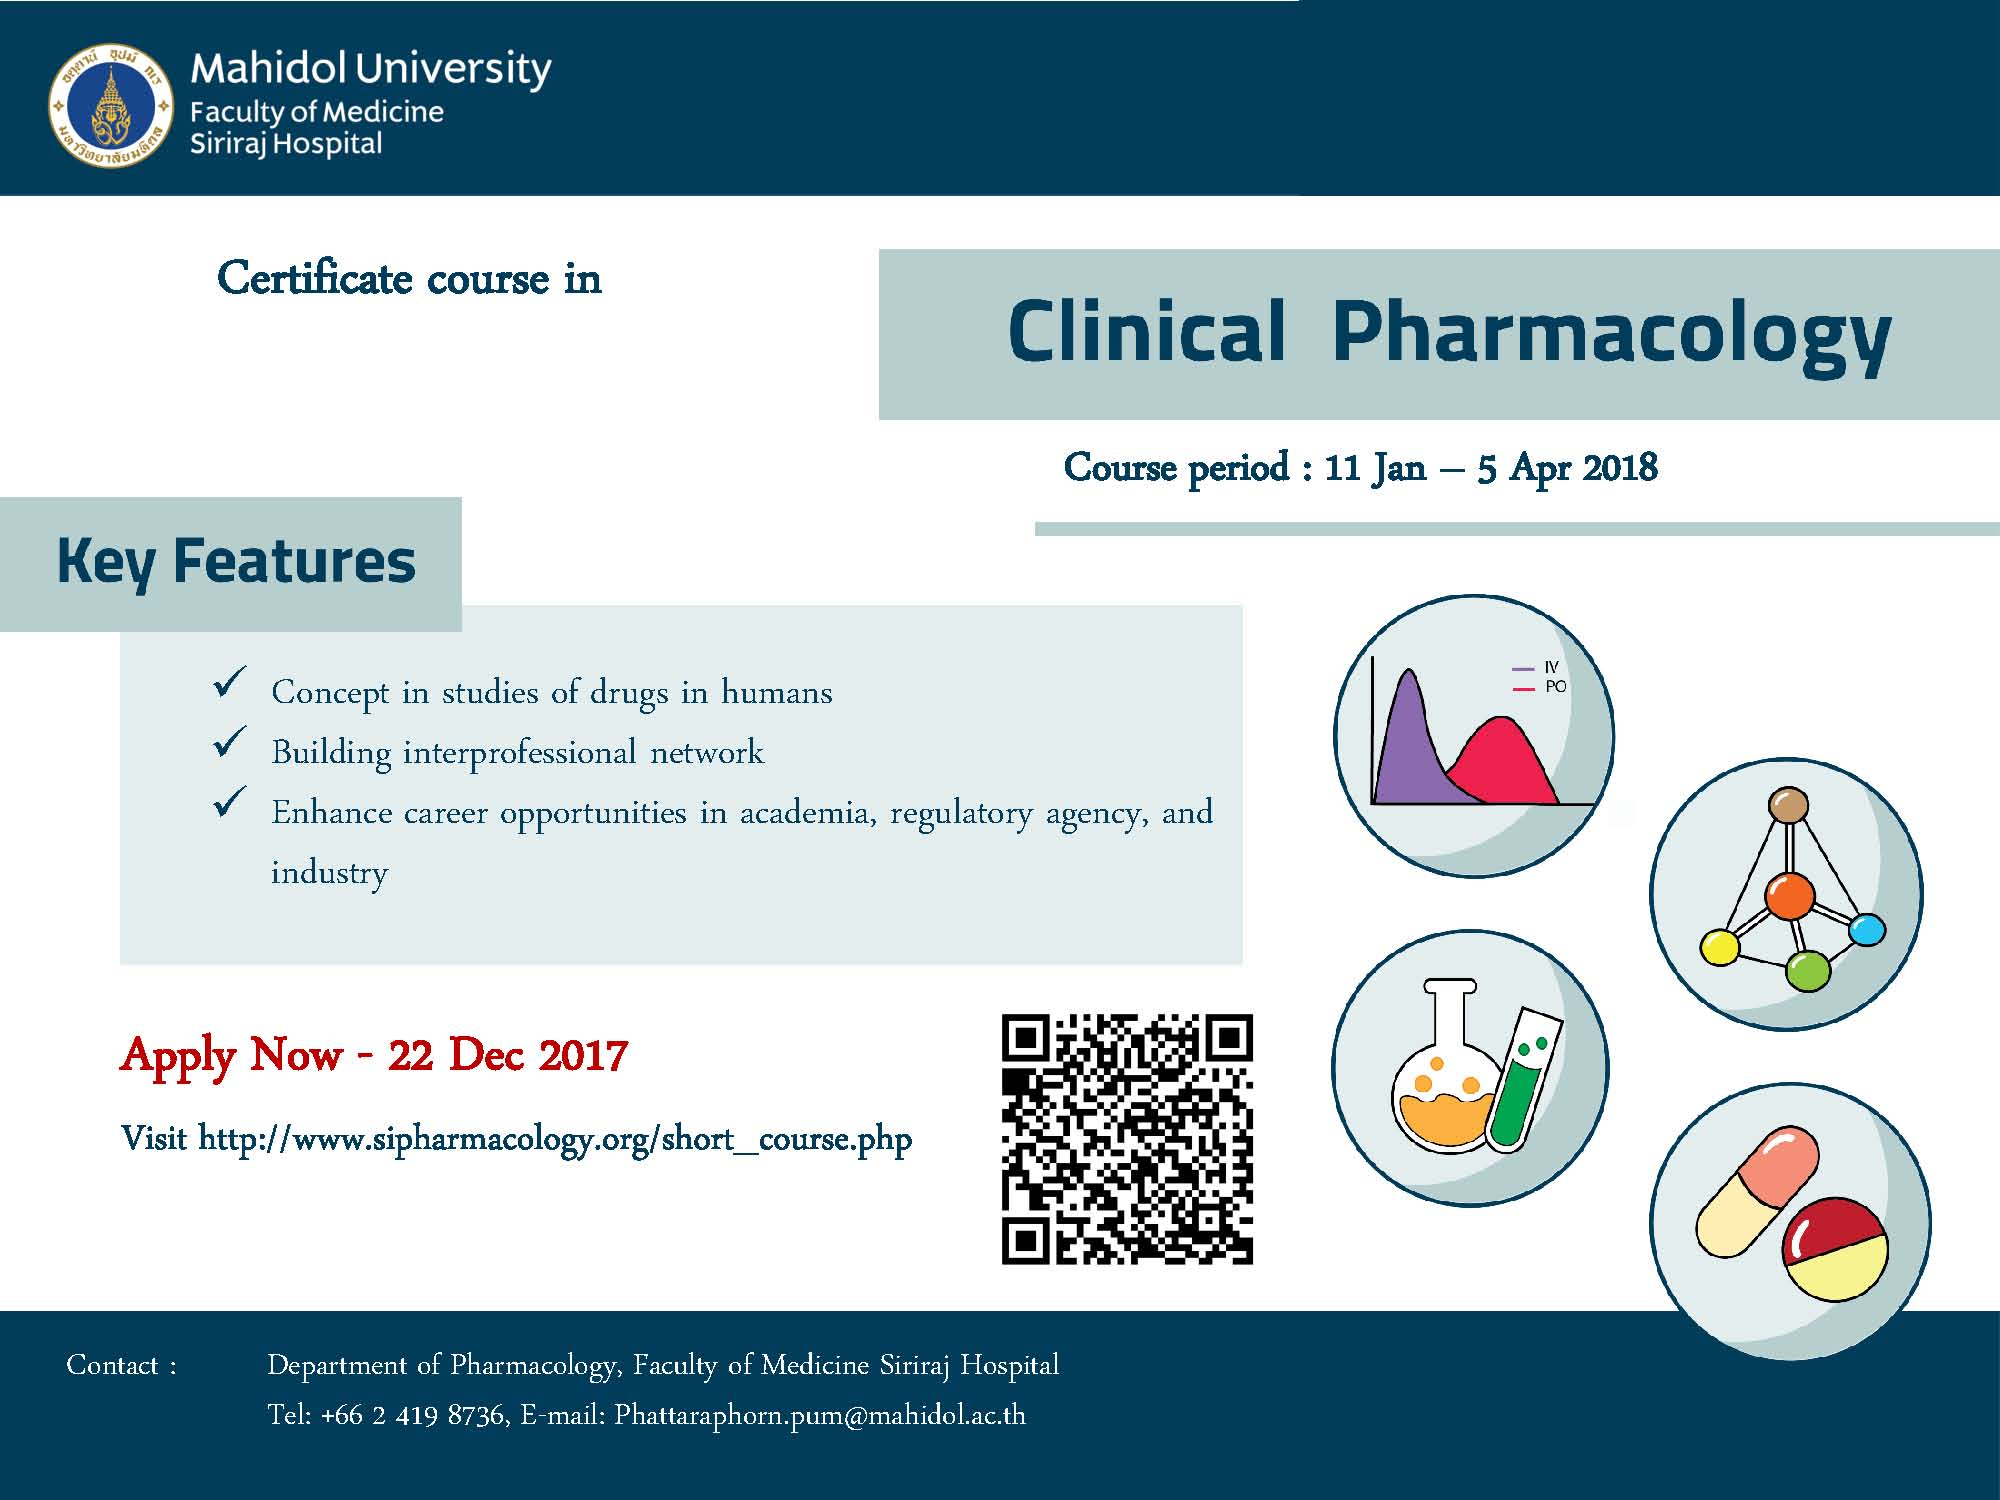 Call for Application for Certificate in Clinical Pharmacology